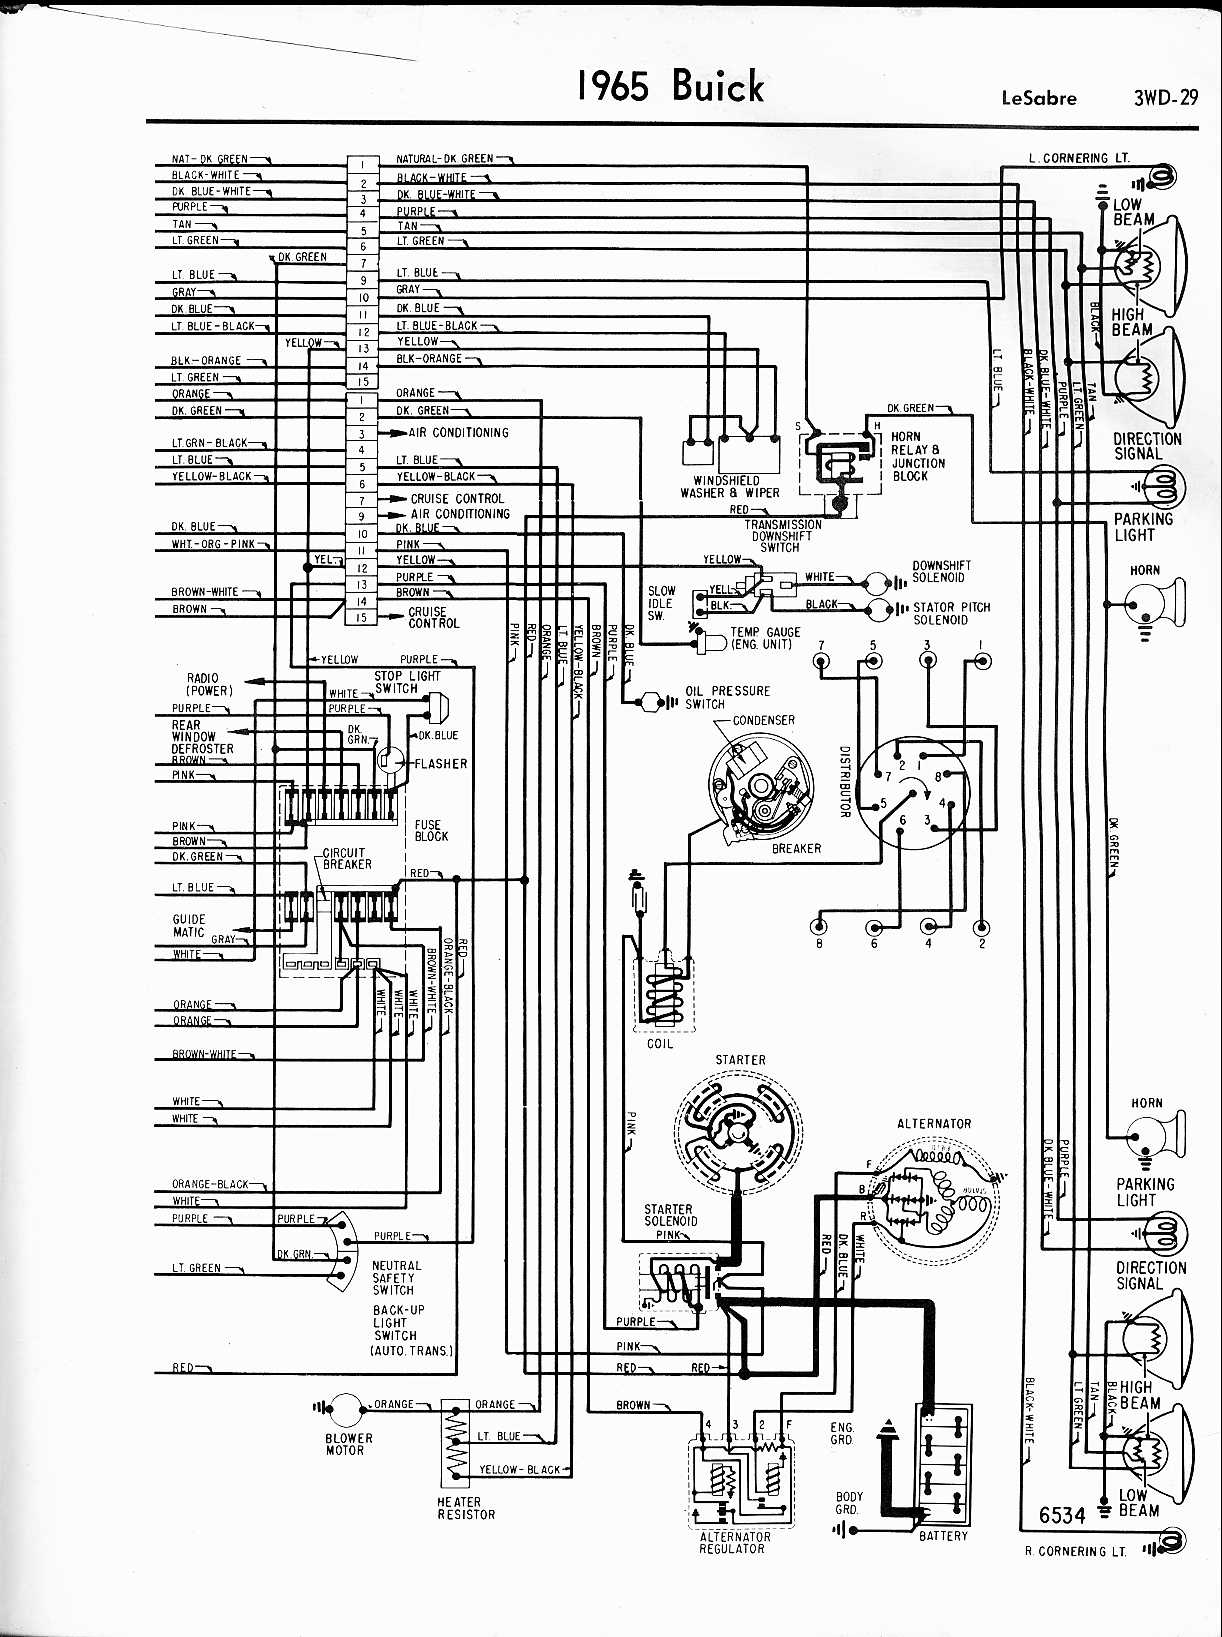 2000 Ford Headlight Switch Wiring Diagram Simple Guide About 1995 Mustang V6 Fuse Buick Diagrams 1957 1965 Ranger